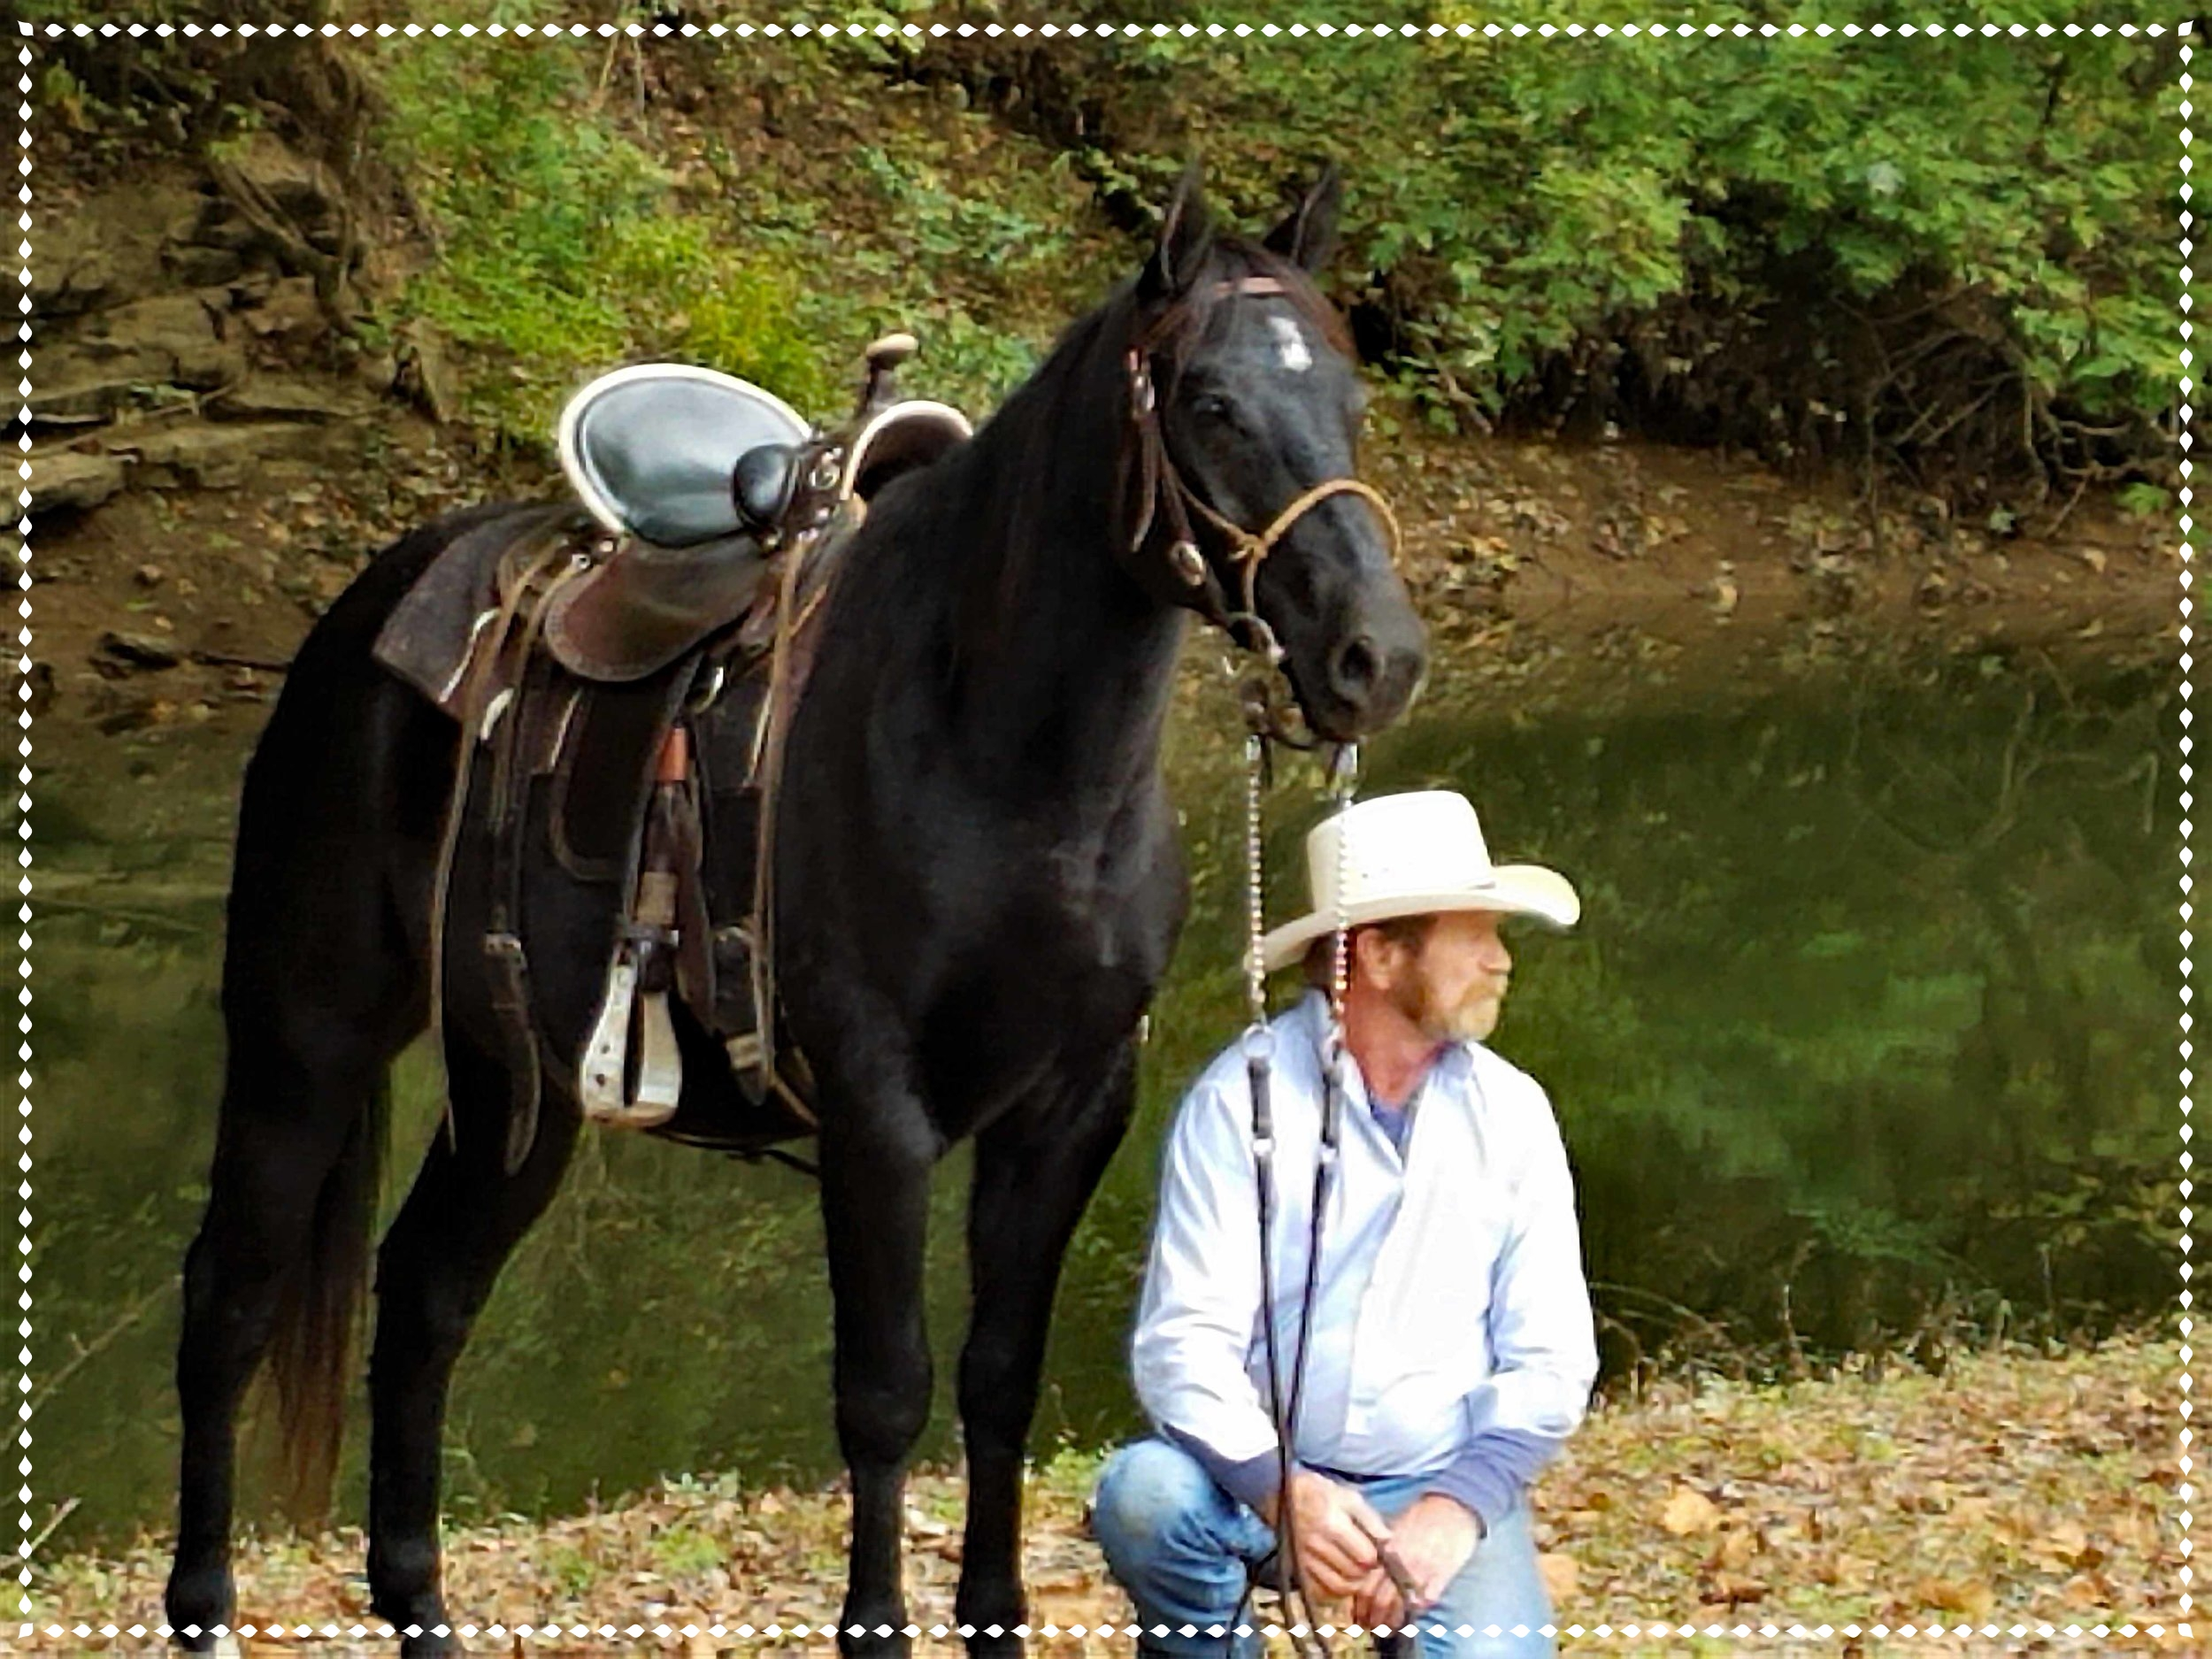 Magic Onyx, 2015 AQHA Gelding - This black beauty has the stocky Foundation build. He adores people and loves attention. Under saddle, great on trails. He has a curious personality, have not found anything that scares this guy. He wants to be a star. Enrolled in my Ultimate Trail Horse Finishing Program.